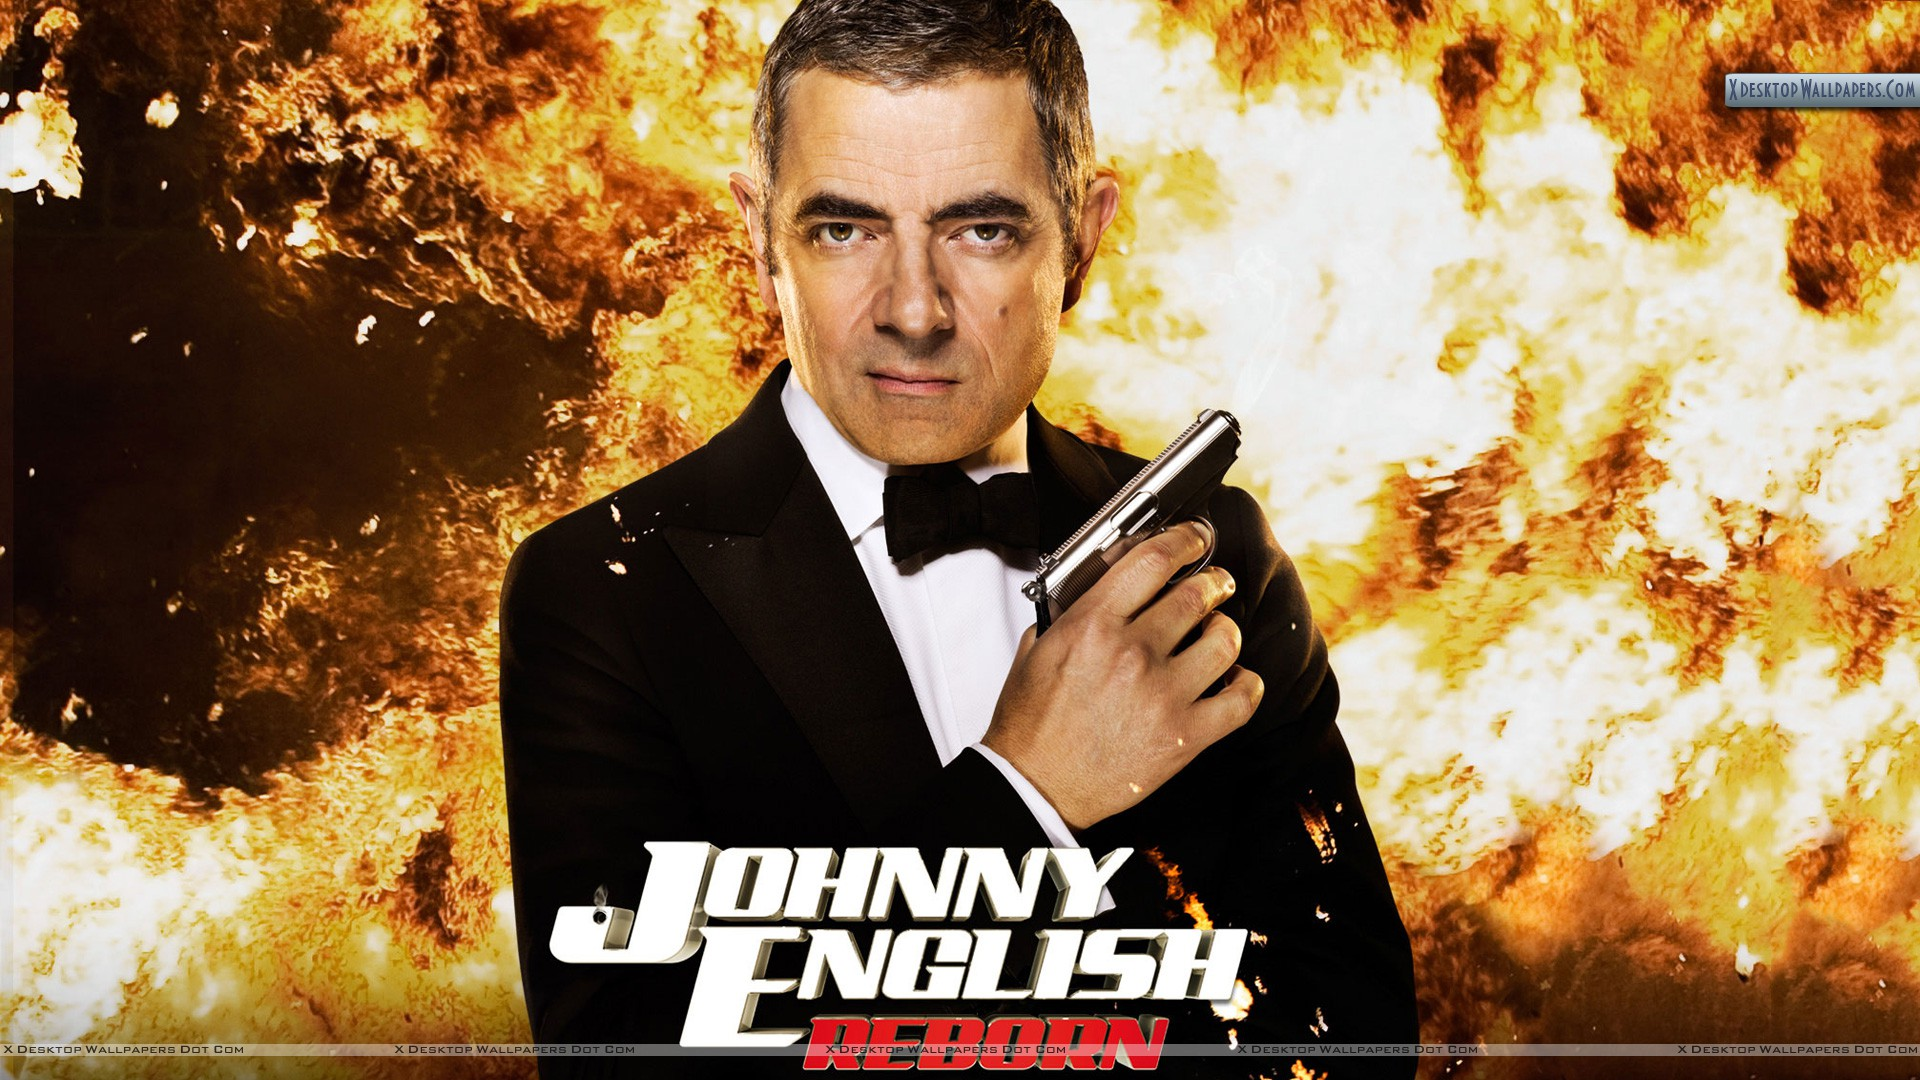 Cars Movie 3 Full Movie >> Johnny English Reborn Wallpapers, Photos & Images in HD